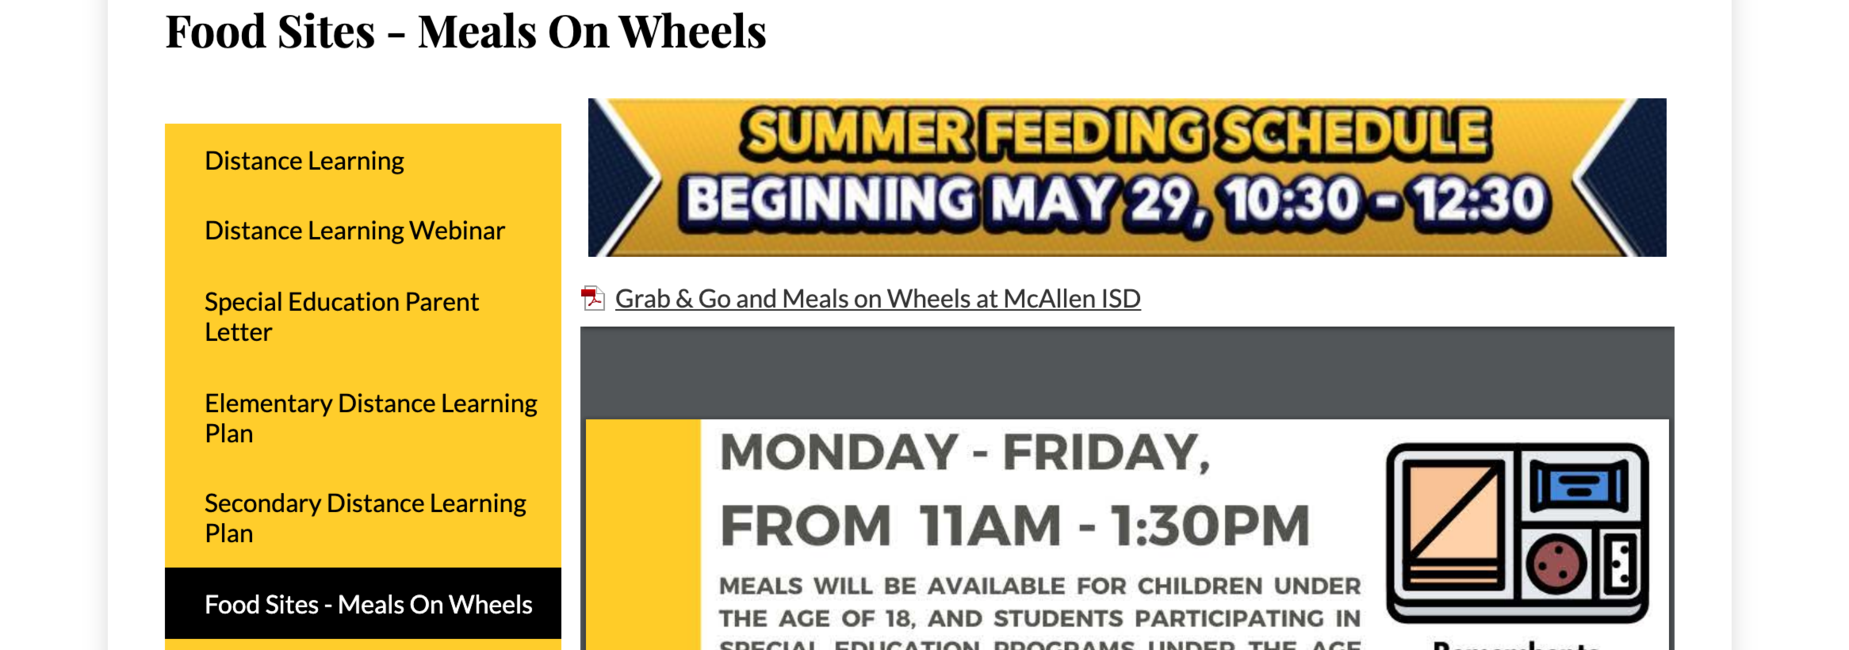 Food Sites Meals on Wheels Monday - Friday 11 - 1:30 PM